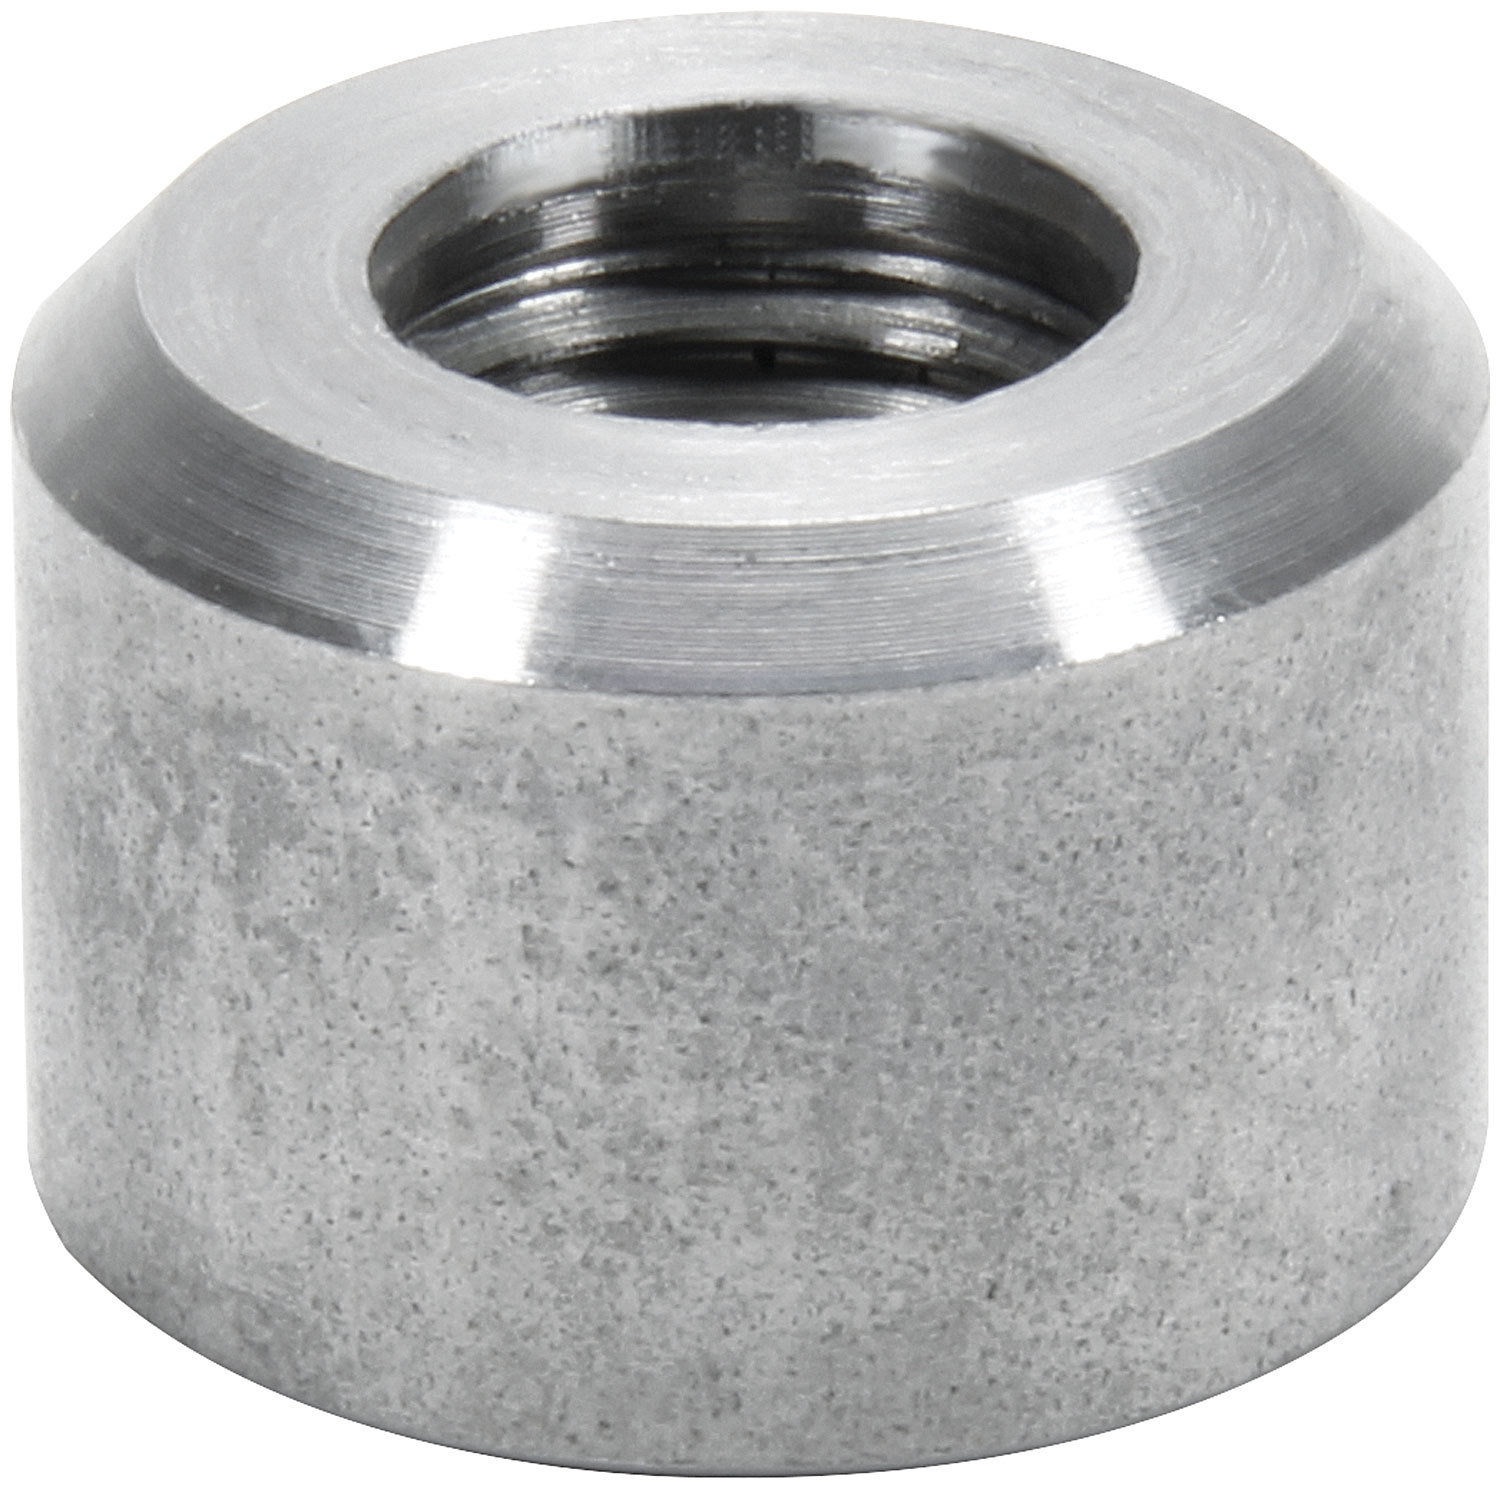 Allstar Performance 50751 Bung, 1/4 in NPT Female, Weld-On, Steel, Natural, Each